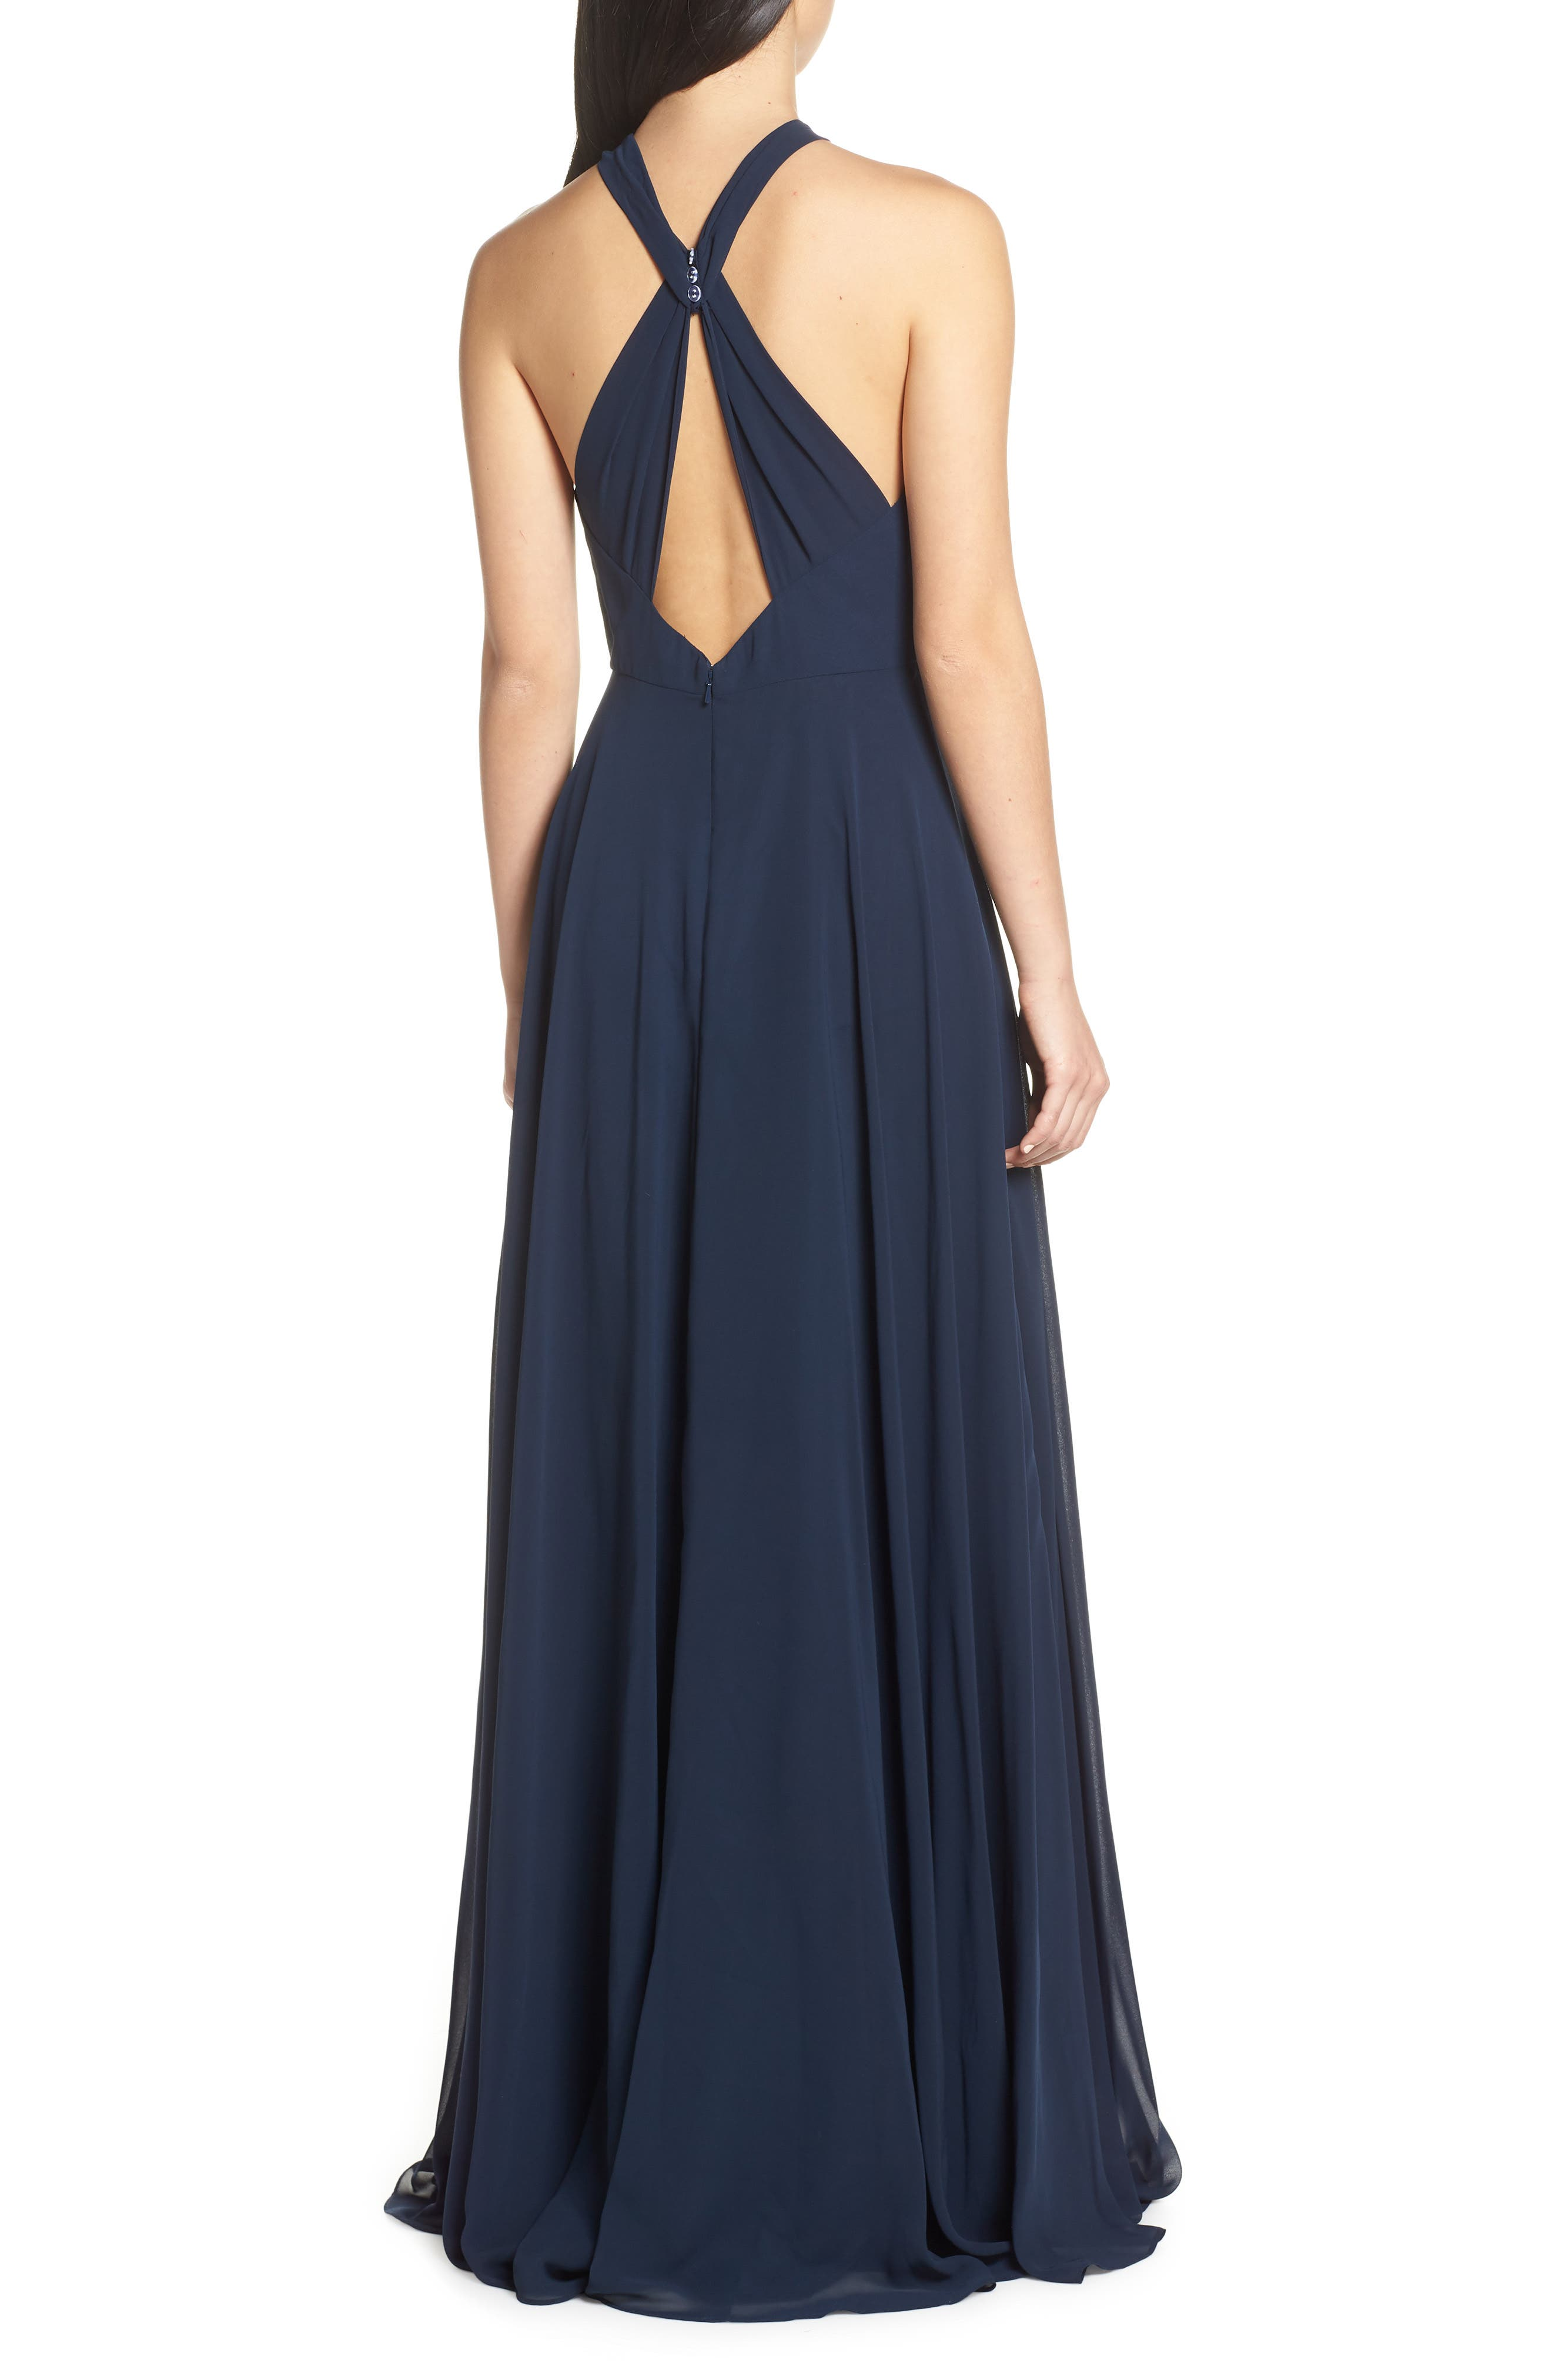 JENNY YOO, Halle Halter Evening Dress, Alternate thumbnail 2, color, NAVY